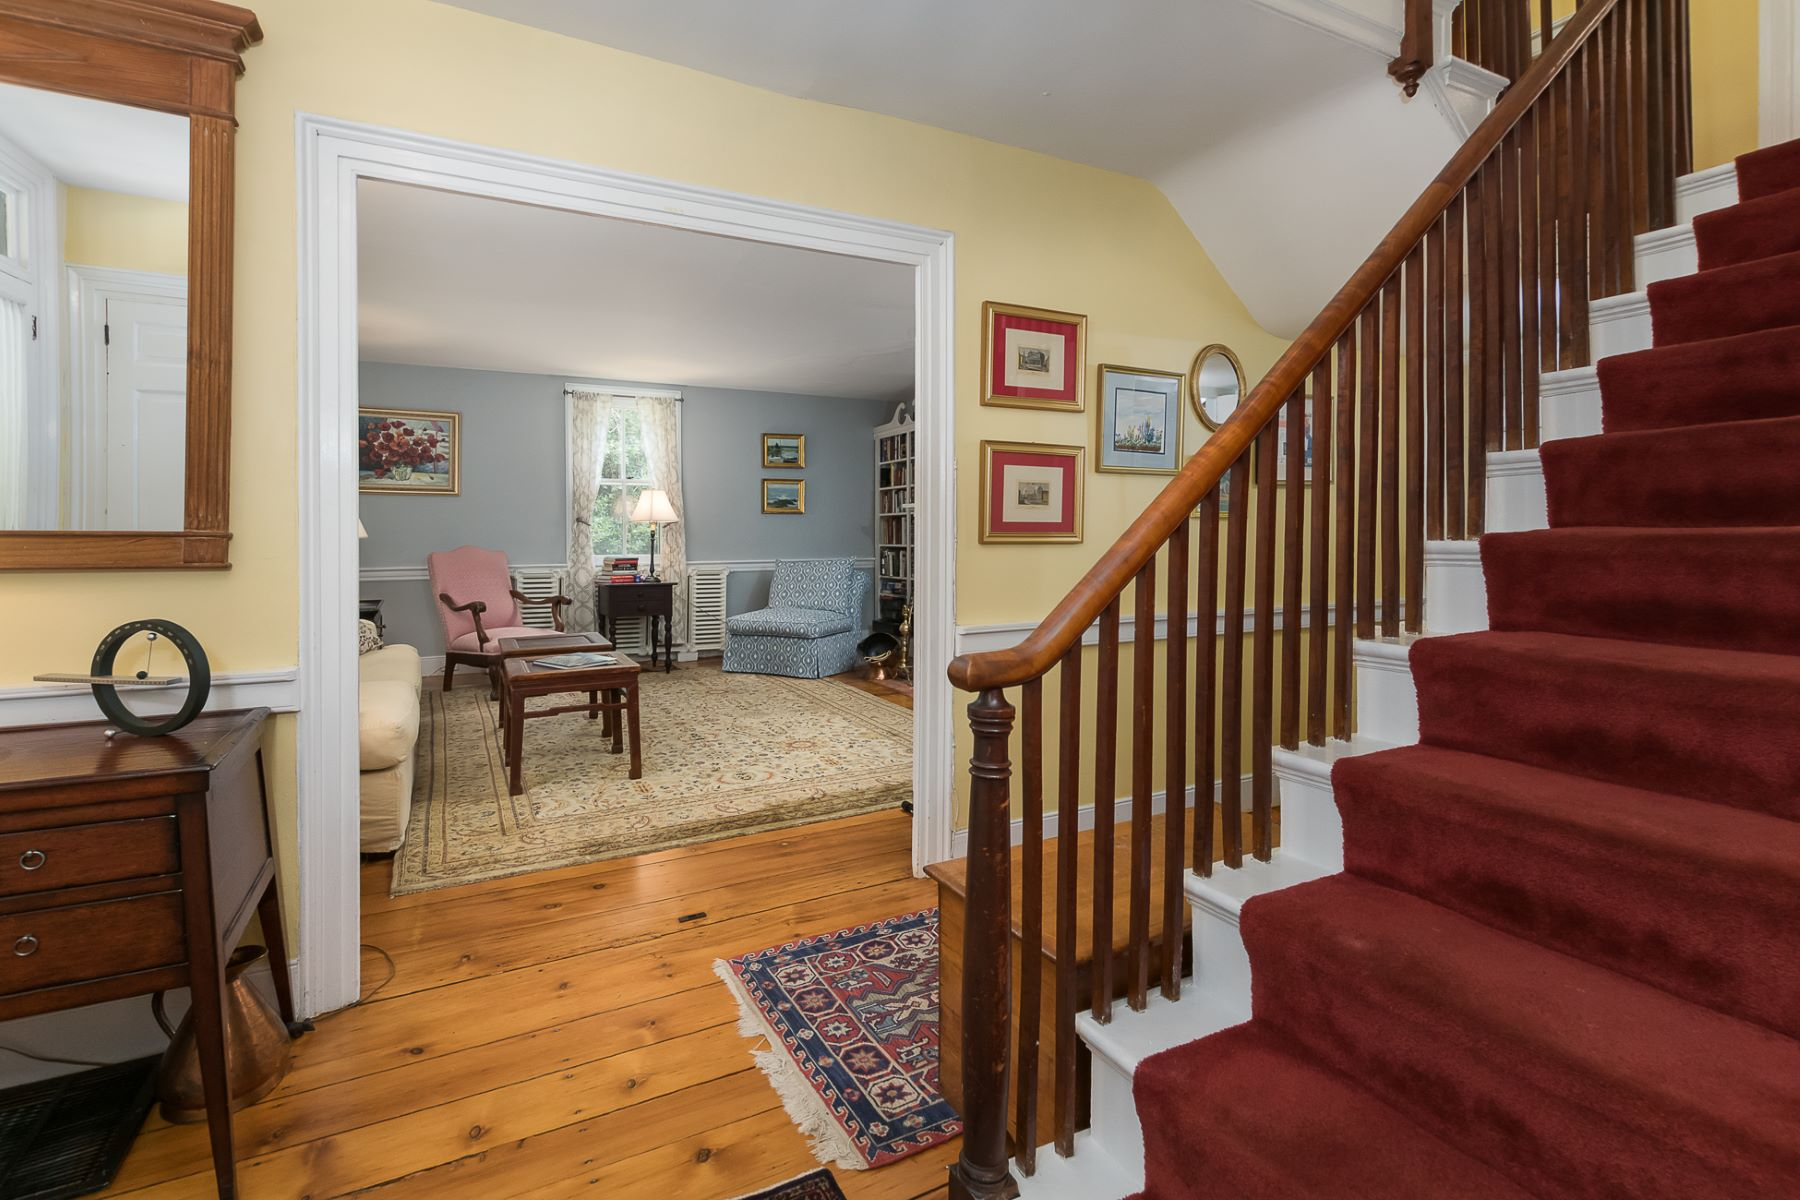 Additional photo for property listing at Historic Home Just As Alluring As Its Little Town 11 Buttonwood Street, Crosswicks, New Jersey 08515 Verenigde Staten